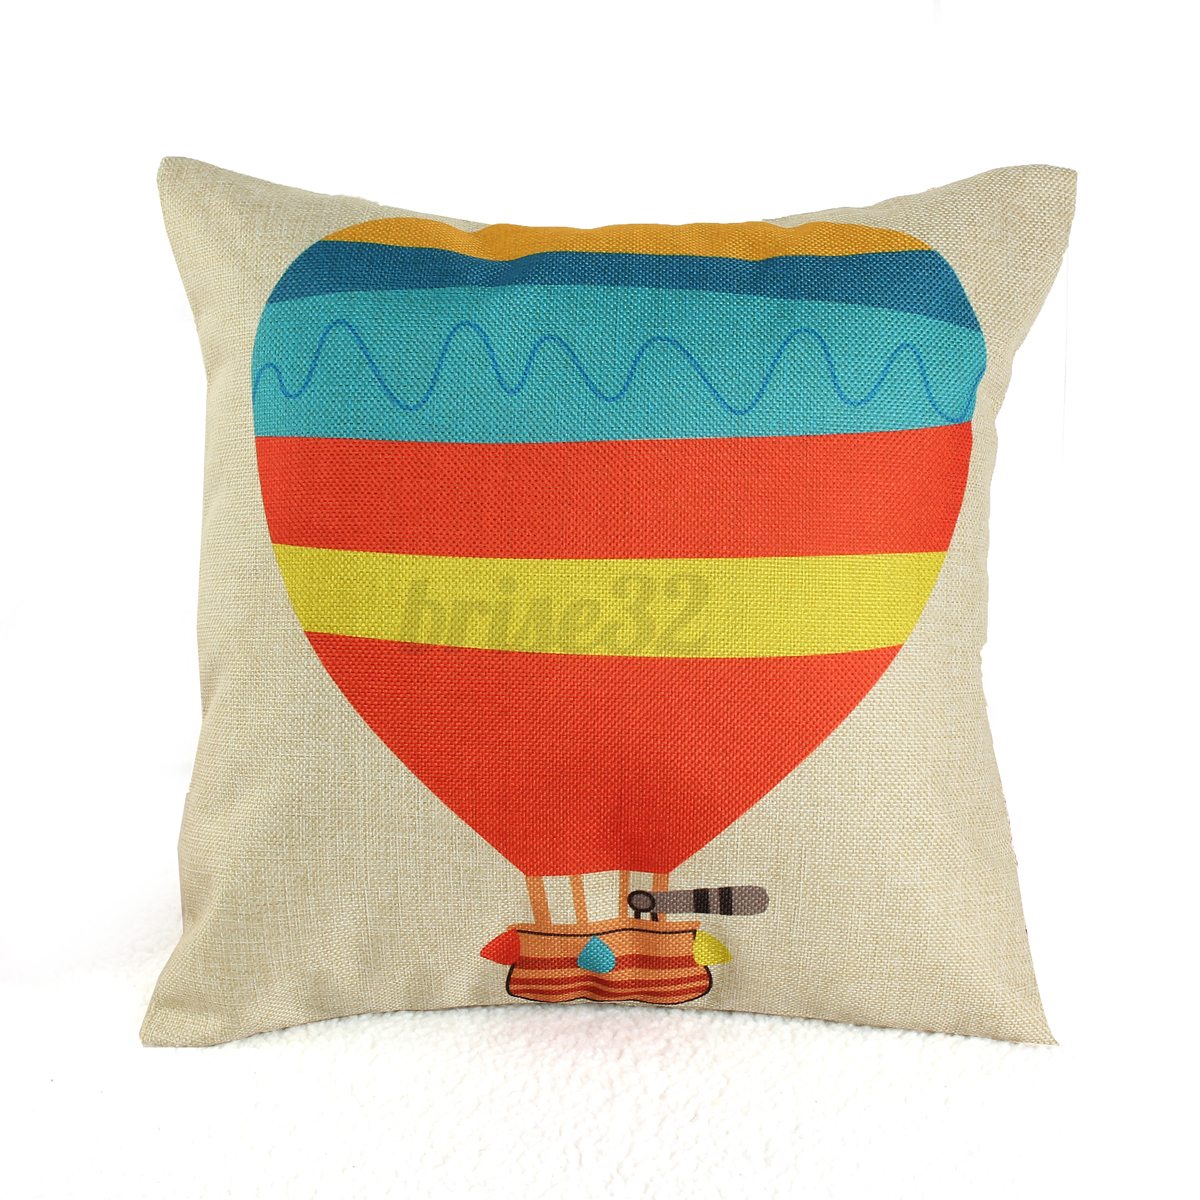 Square Throw Pillow Cover : Square Simple Retro Cotton Linen Throw Cushion Covers Pillow Case Home Decor